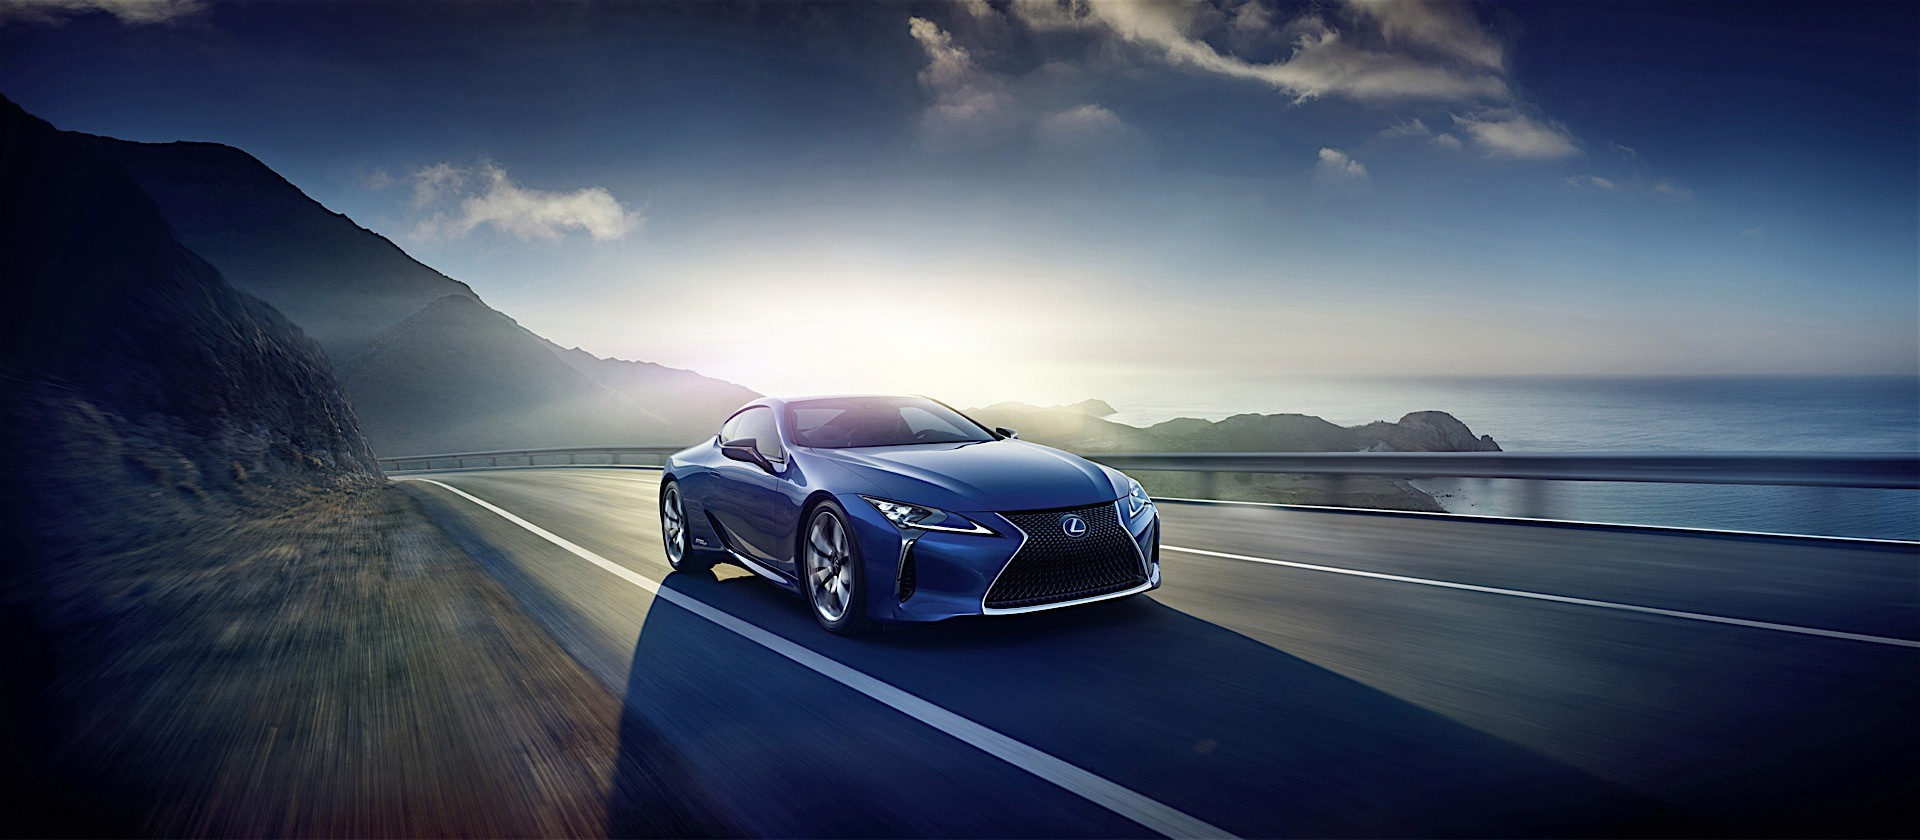 Lexus Engineer Details the Twin-Transmission Setup of New